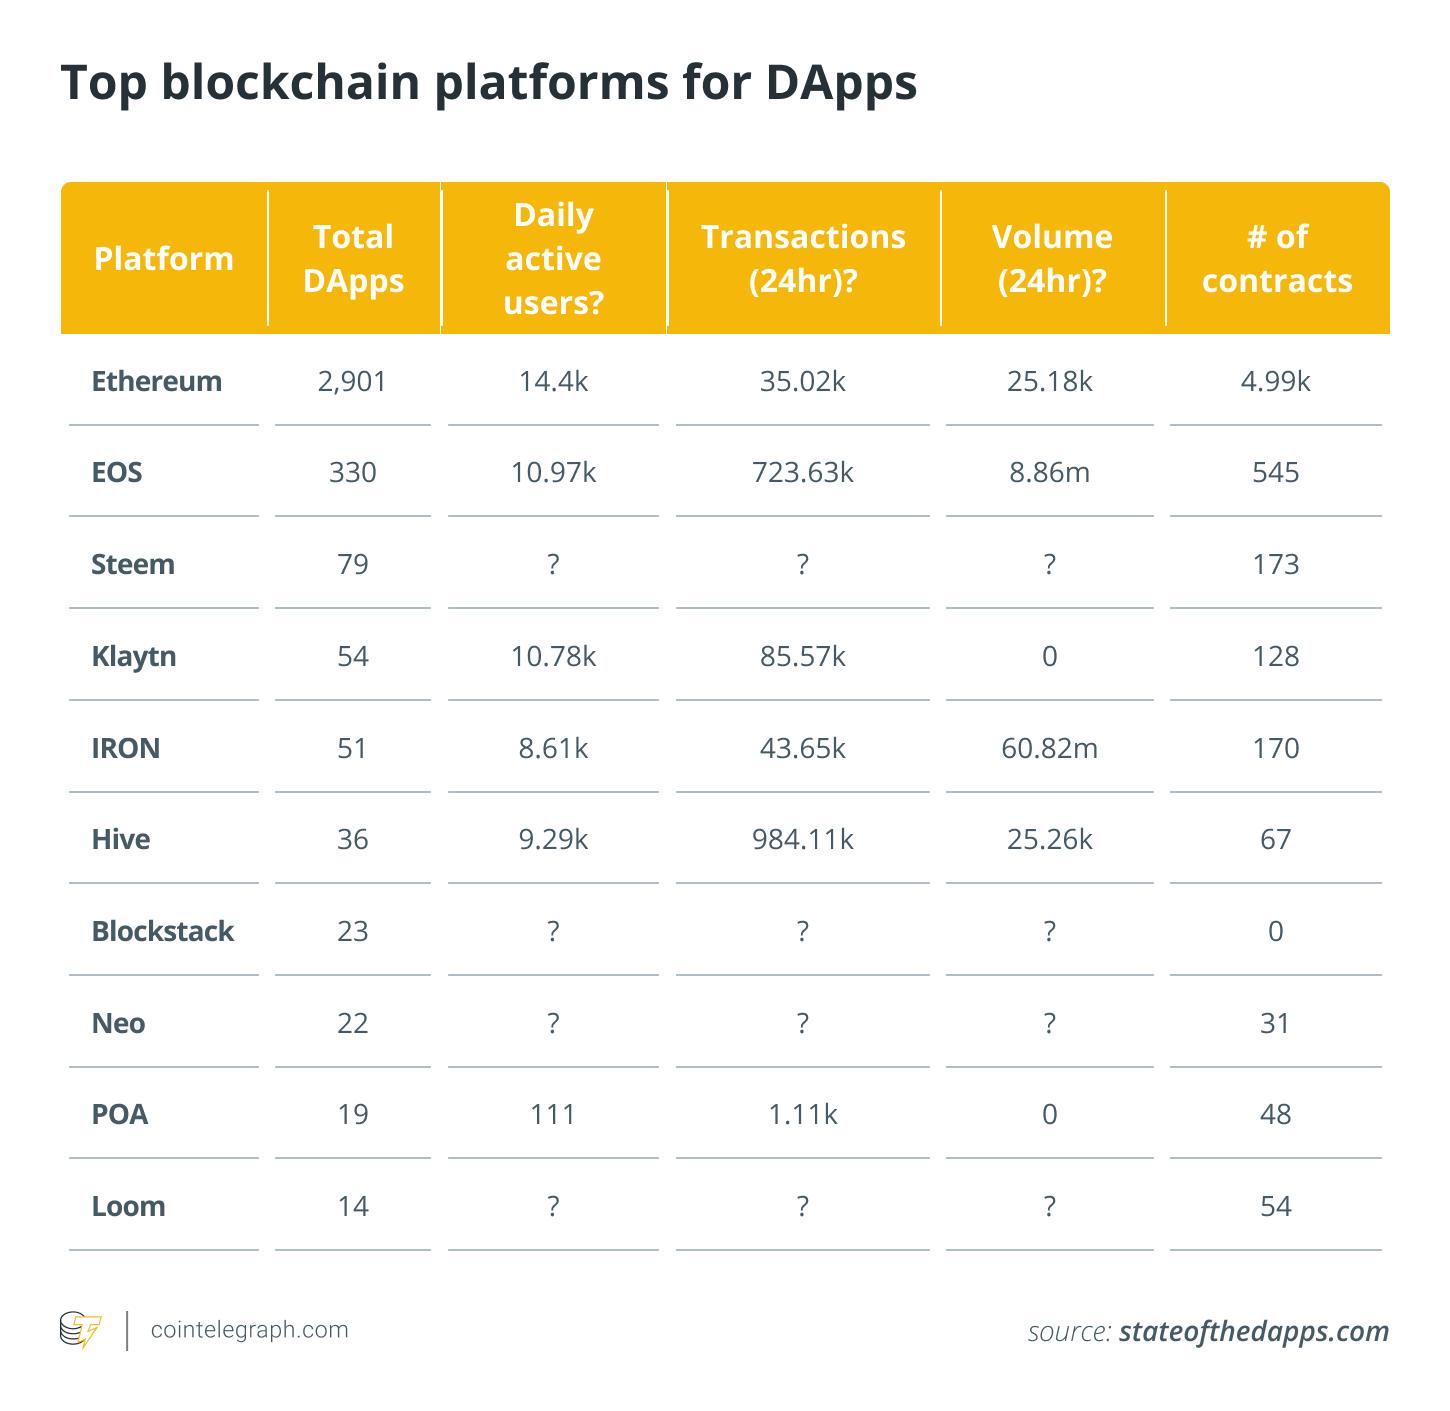 Top blockchain platforms for DApps